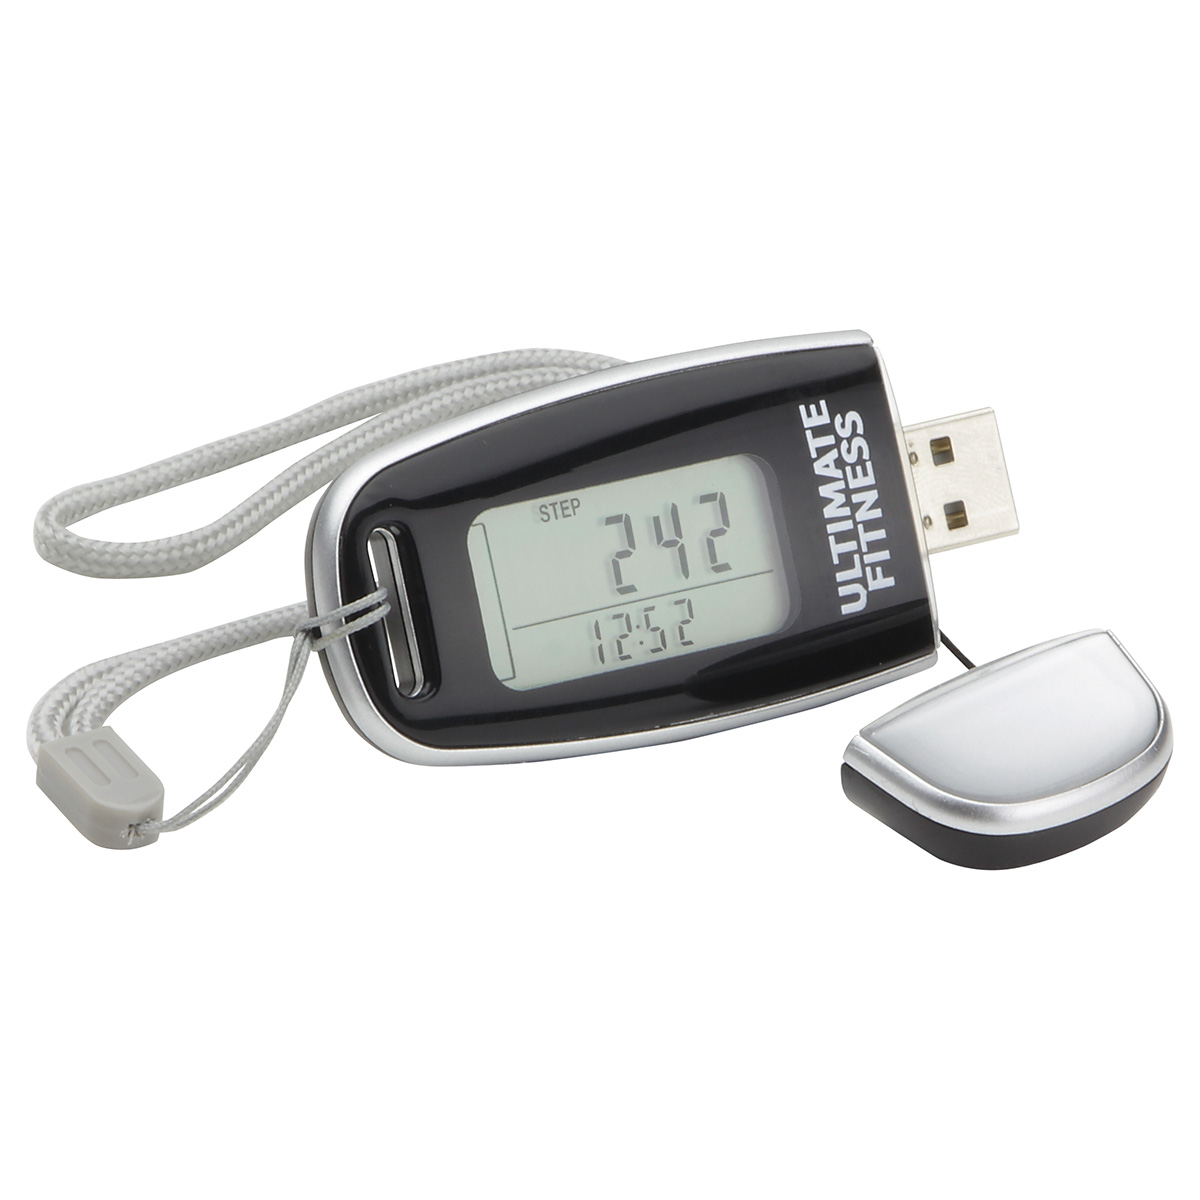 Data Tracker USB Pedometer, WHF-US10 - 1 Colour Imprint